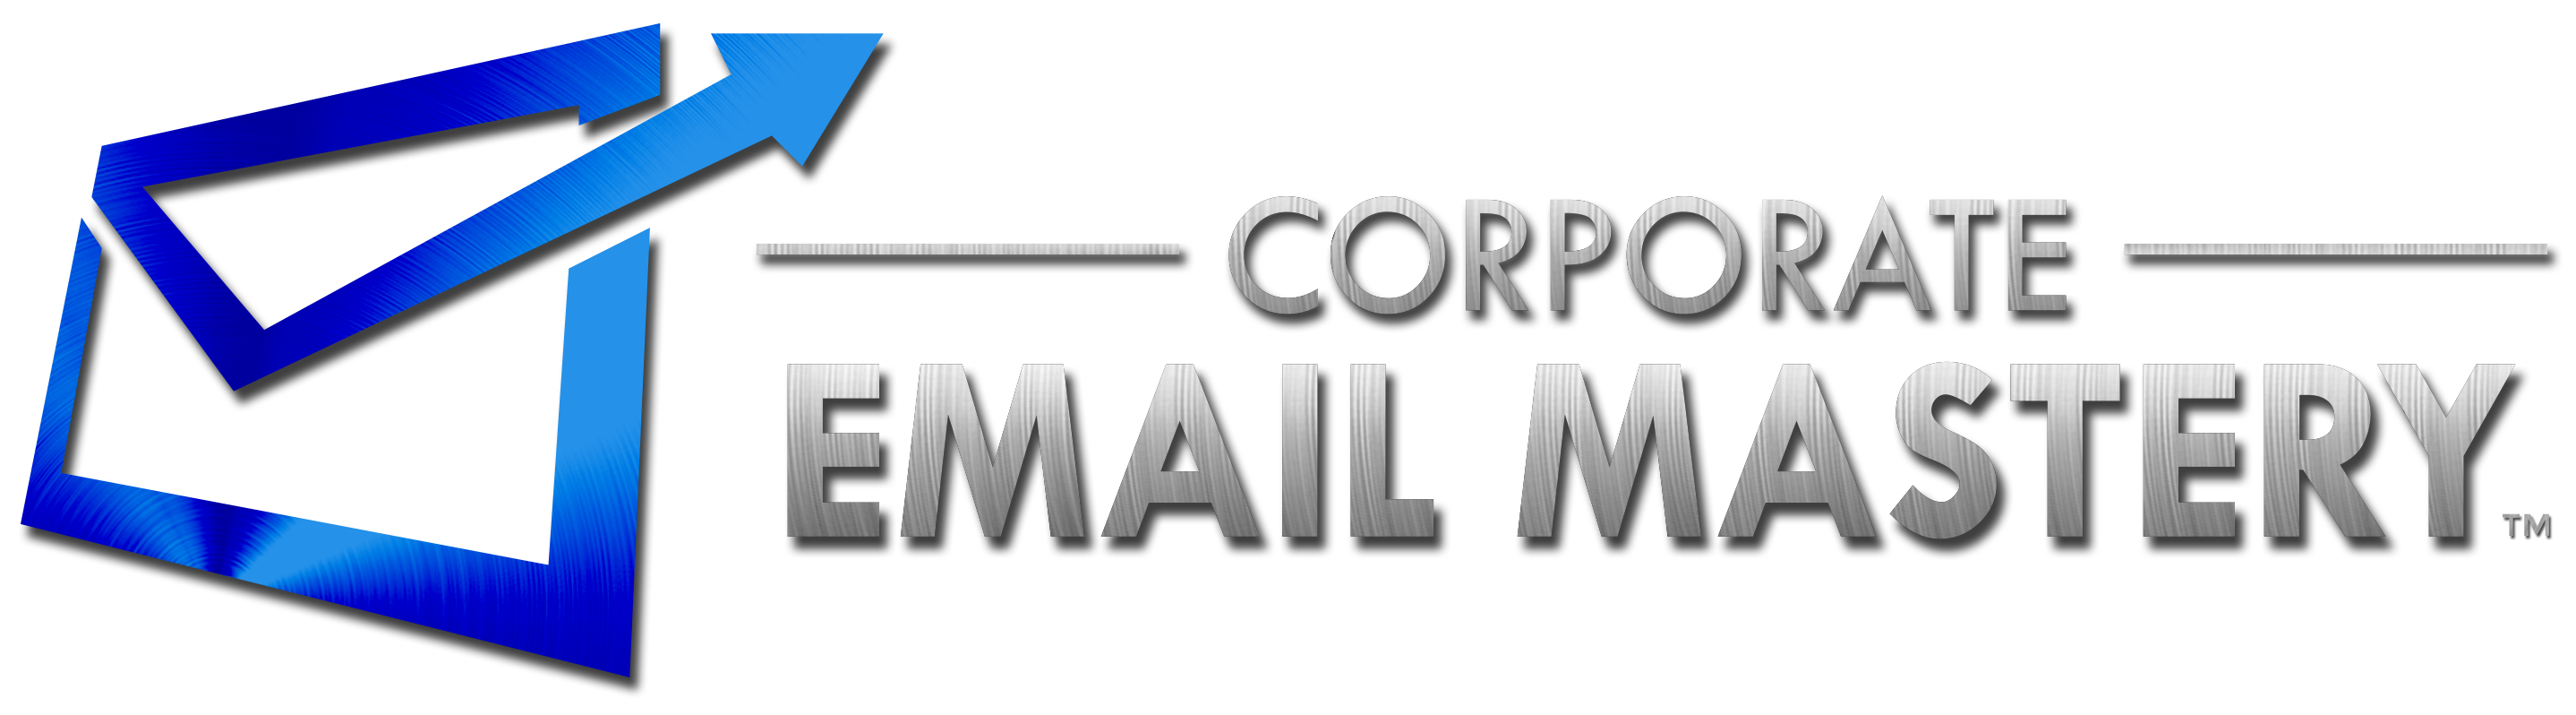 2018_08_31-Corporate-Email-Mastery-Logo-Horizontal